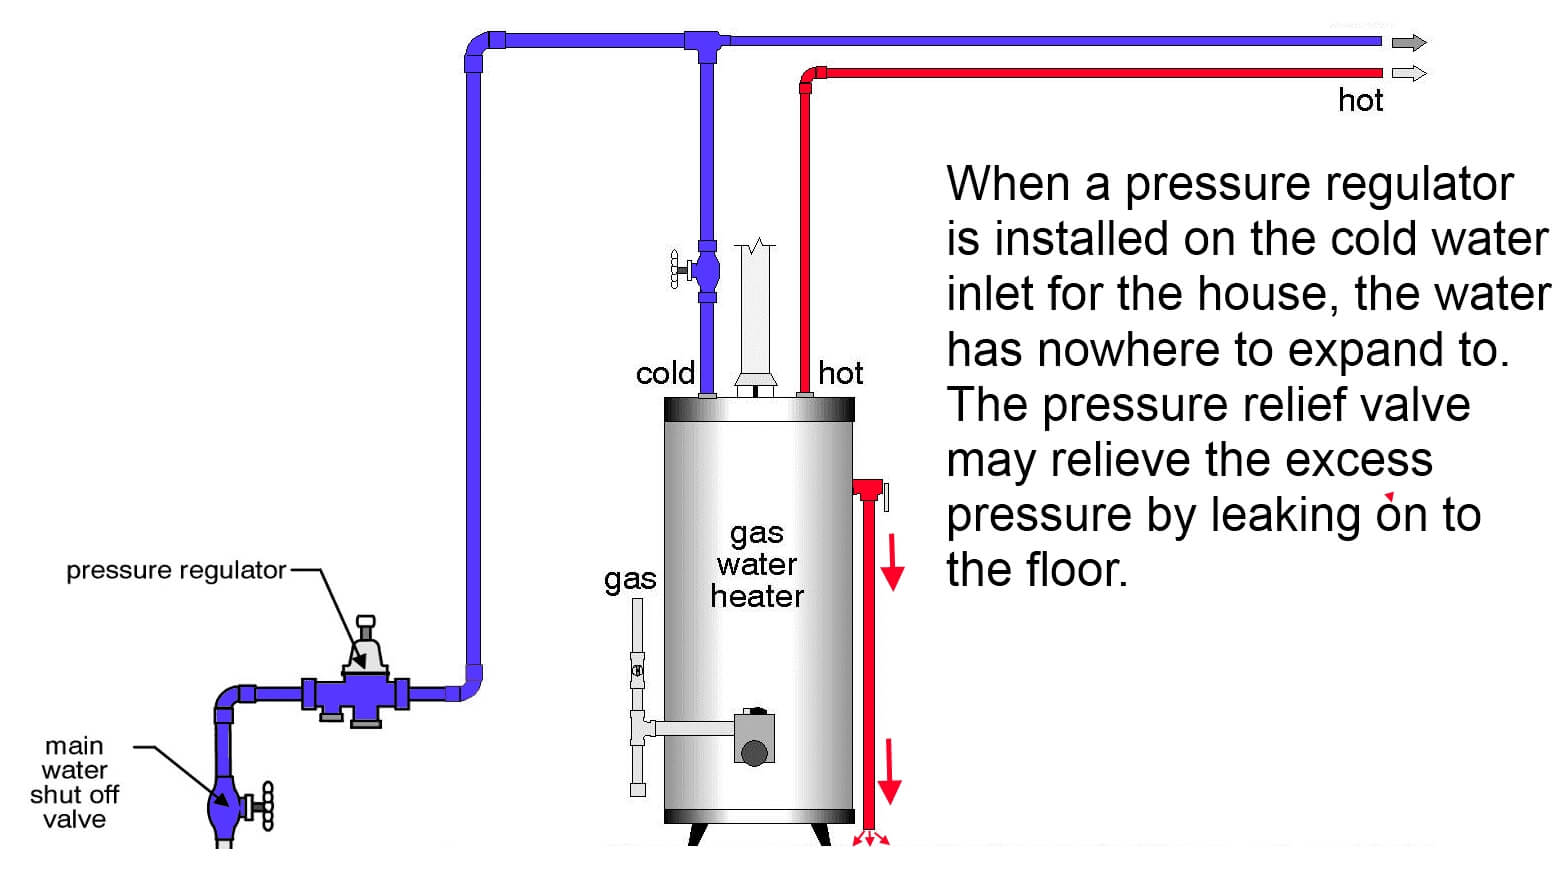 Why the relief valve at the water heater is leaking and what to do pressure regulator prevents expansion ccuart